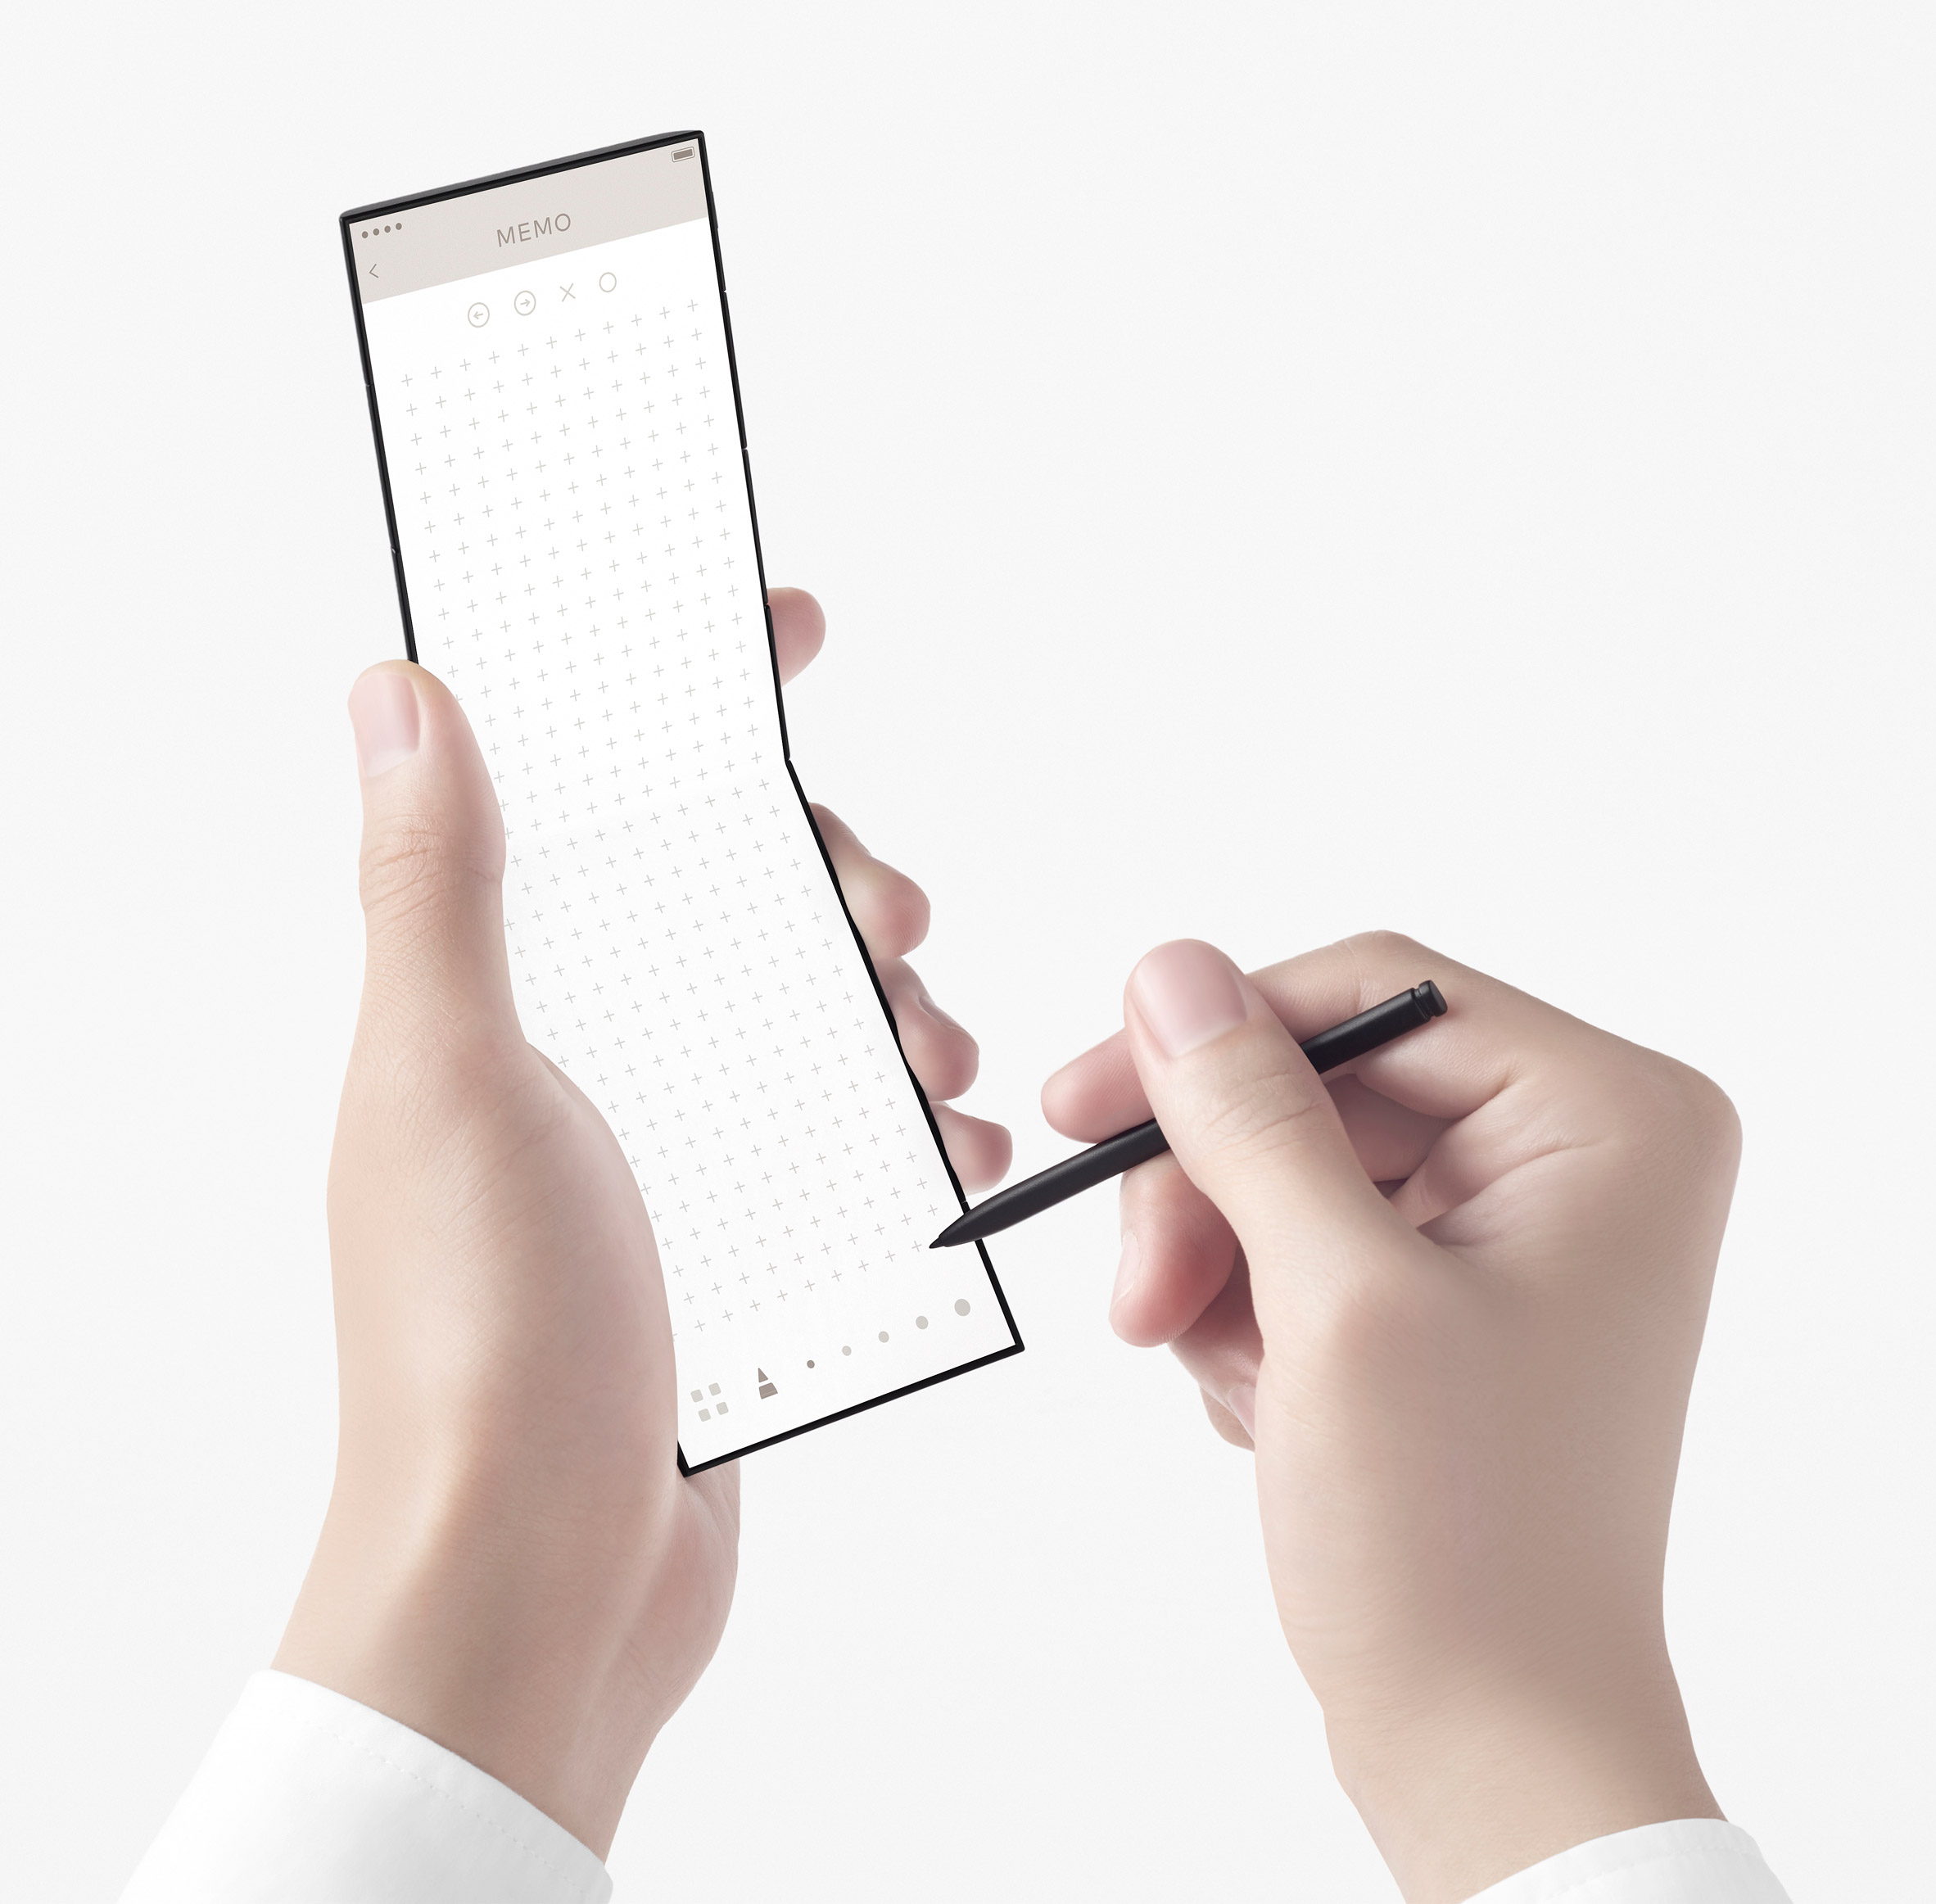 The Slide-Phone concept by Nendo for OPPO comes with a stylus